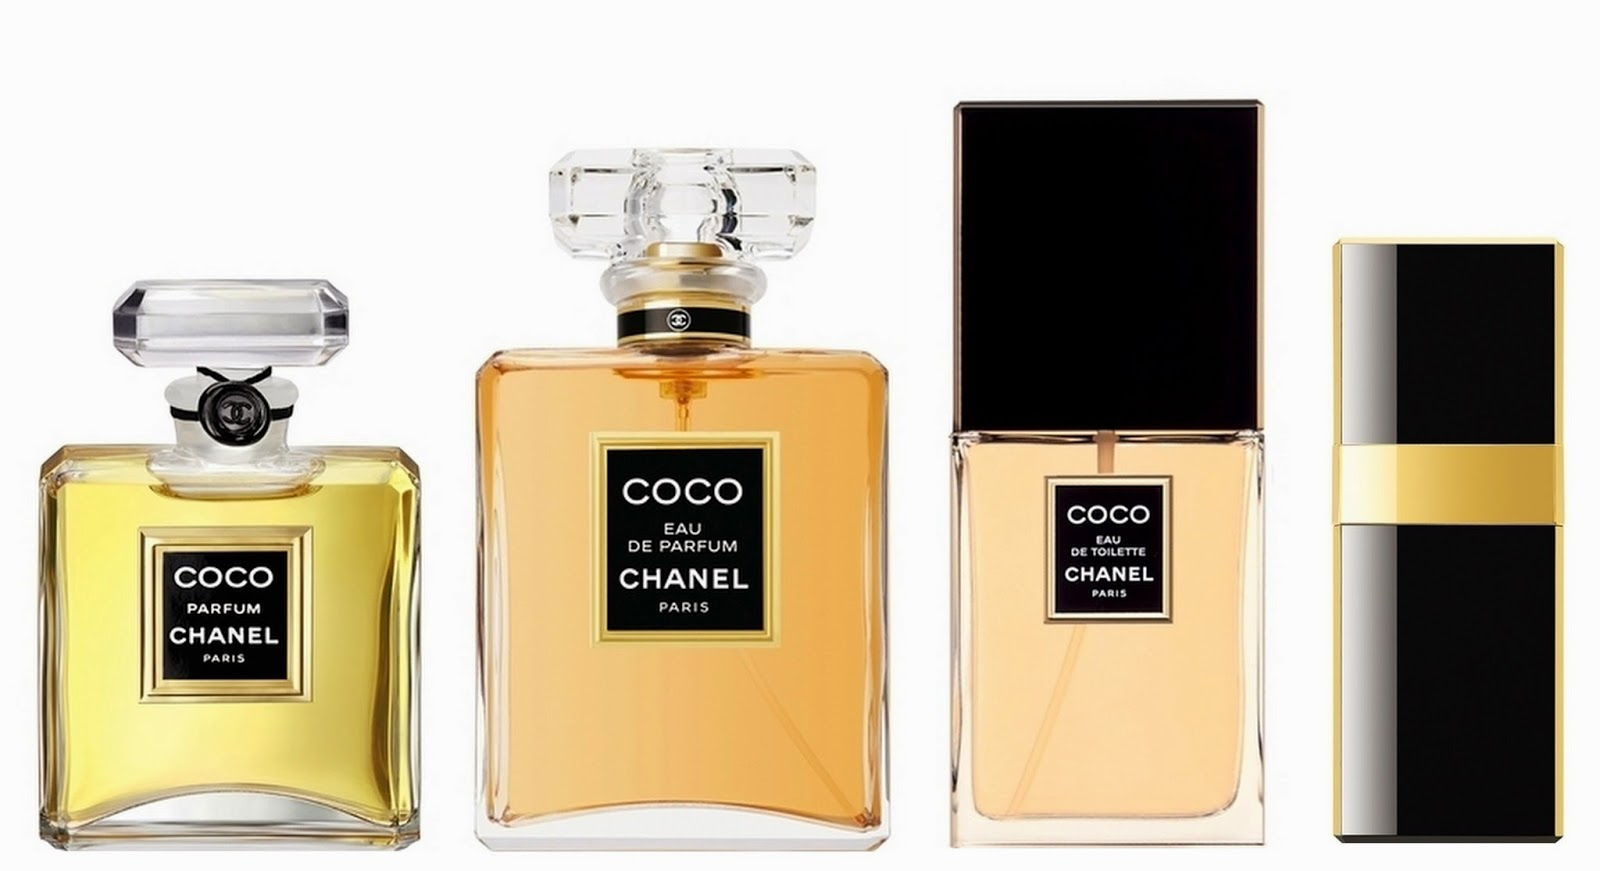 chanel perfume bottles coco by chanel c1984. Black Bedroom Furniture Sets. Home Design Ideas